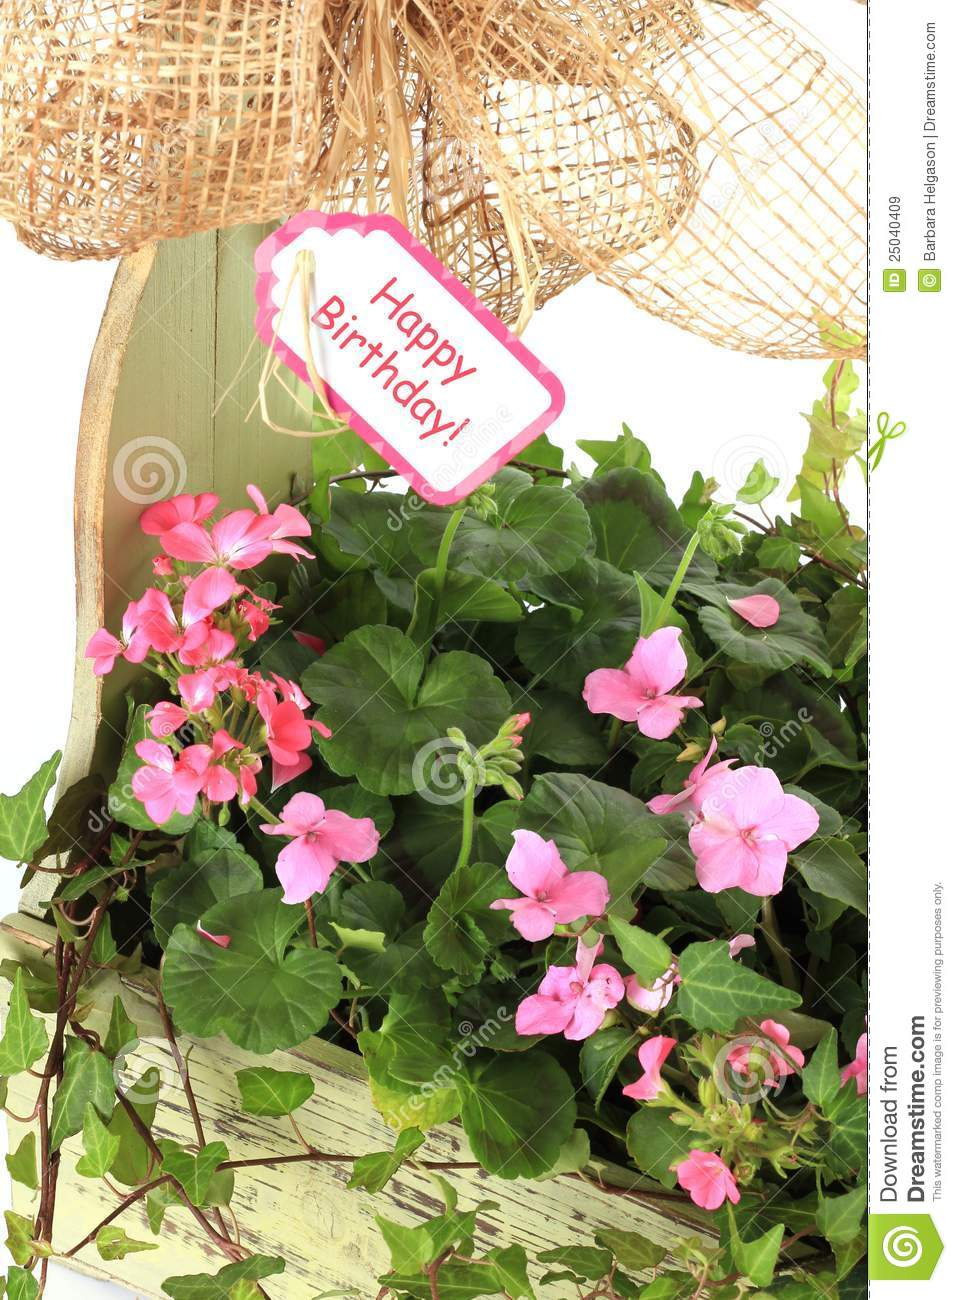 Happy birthday flowers stock image image of white birthday 25040409 happy birthday flowers izmirmasajfo